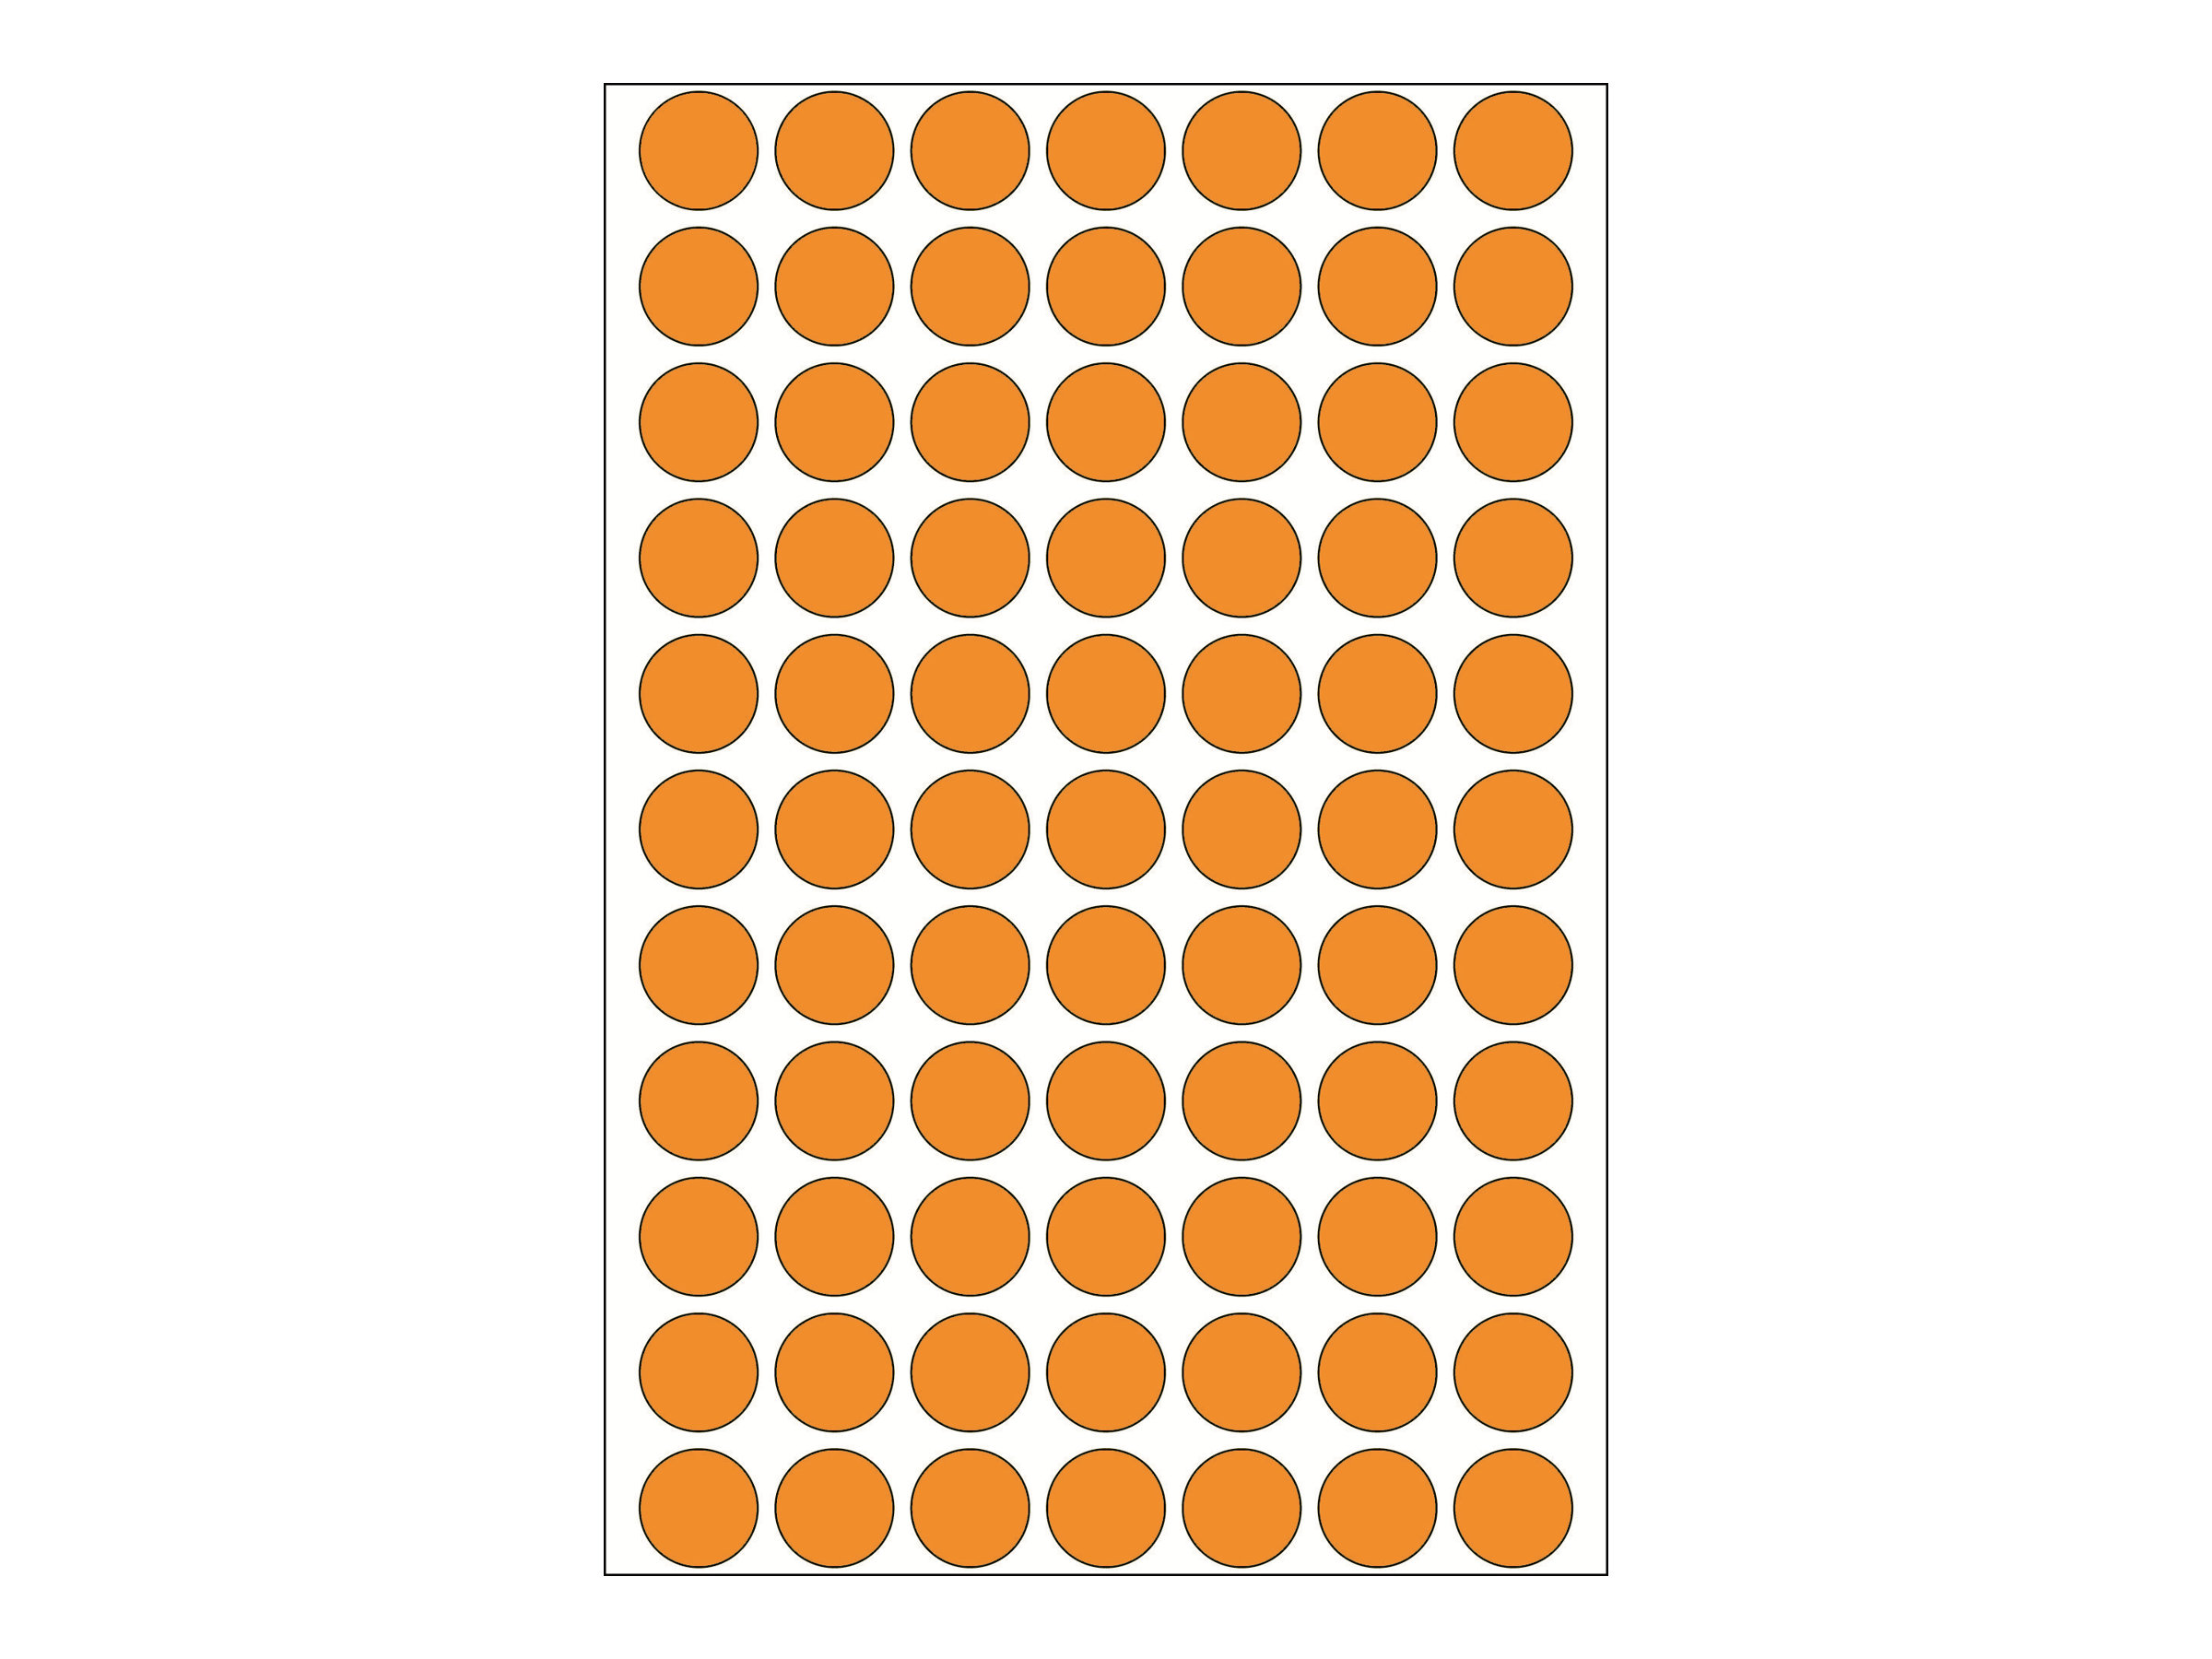 HERMA - Etiketten - permanent adhesive - Luminous Orange - 13 mm rund 1848 Etikett(en) (24 Bogen x 77)